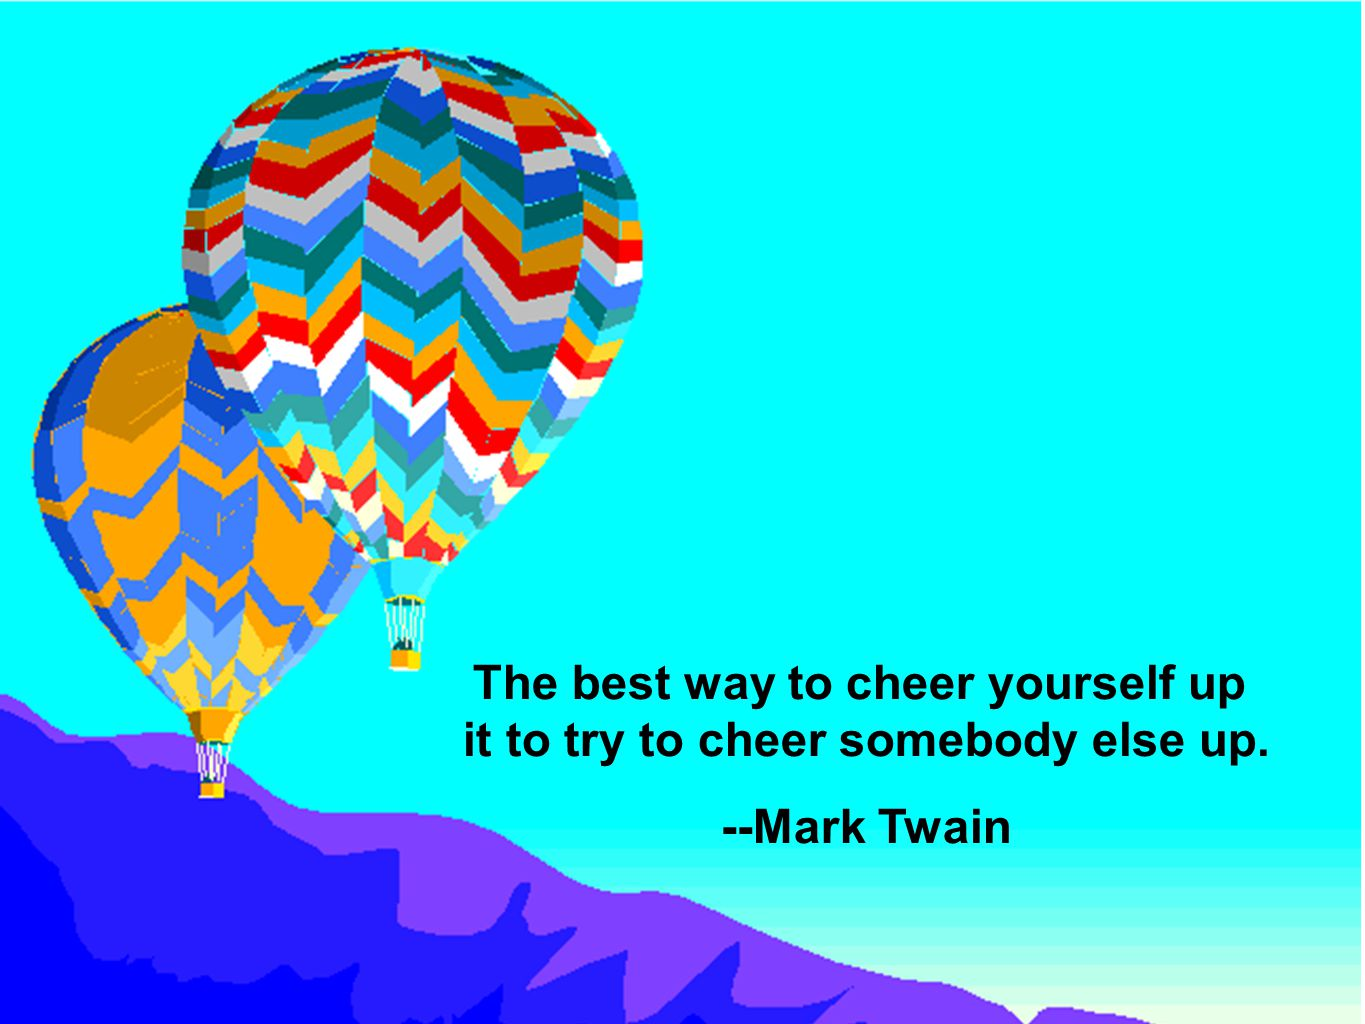 The best way to cheer yourself up it to try to cheer somebody else up. --Mark Twain